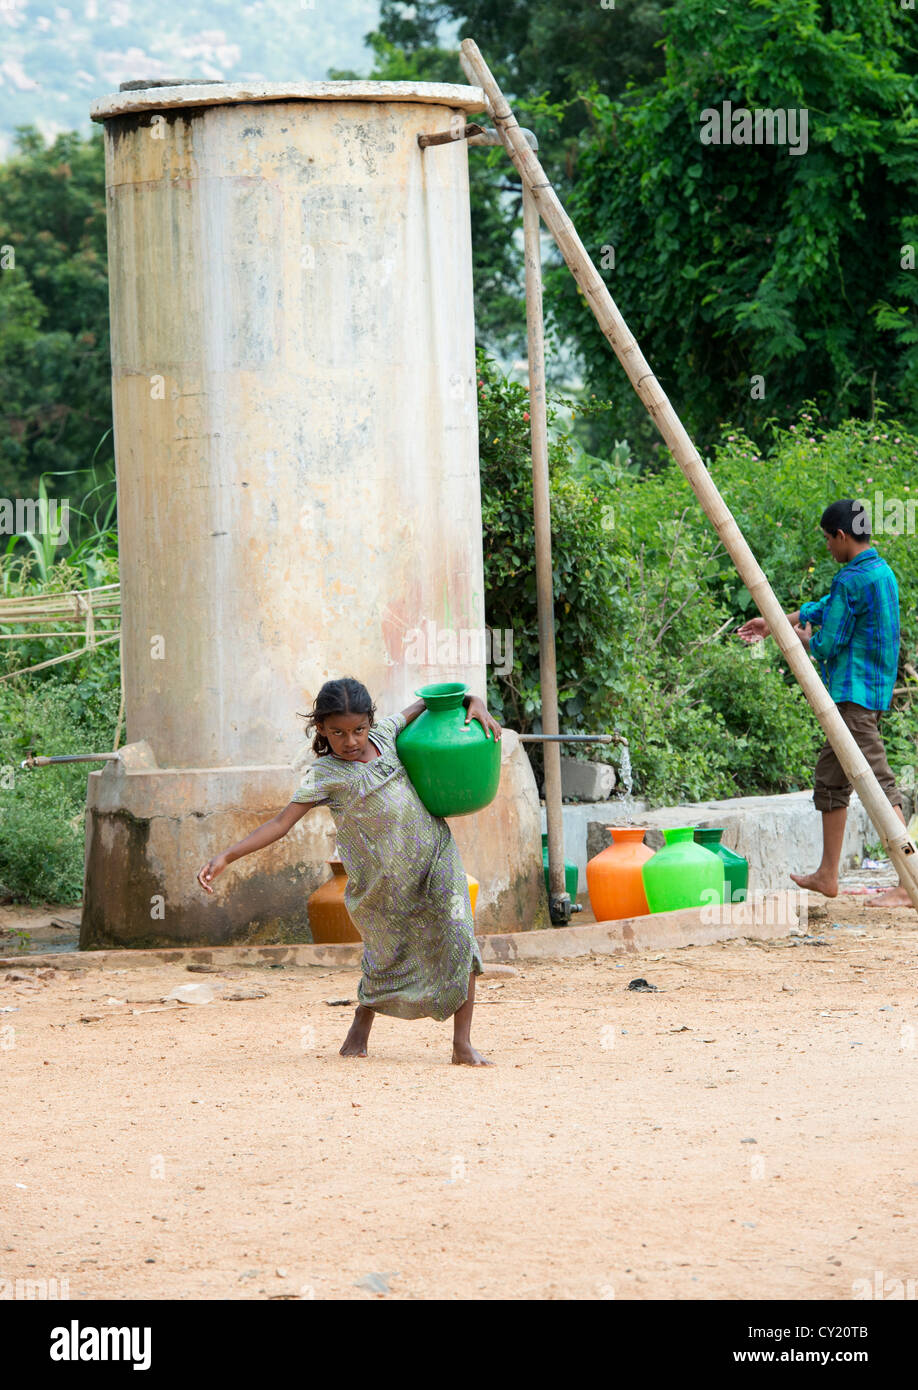 Young rural Indian village girl collecting water from a communal water tank. Andhra Pradesh, India - Stock Image